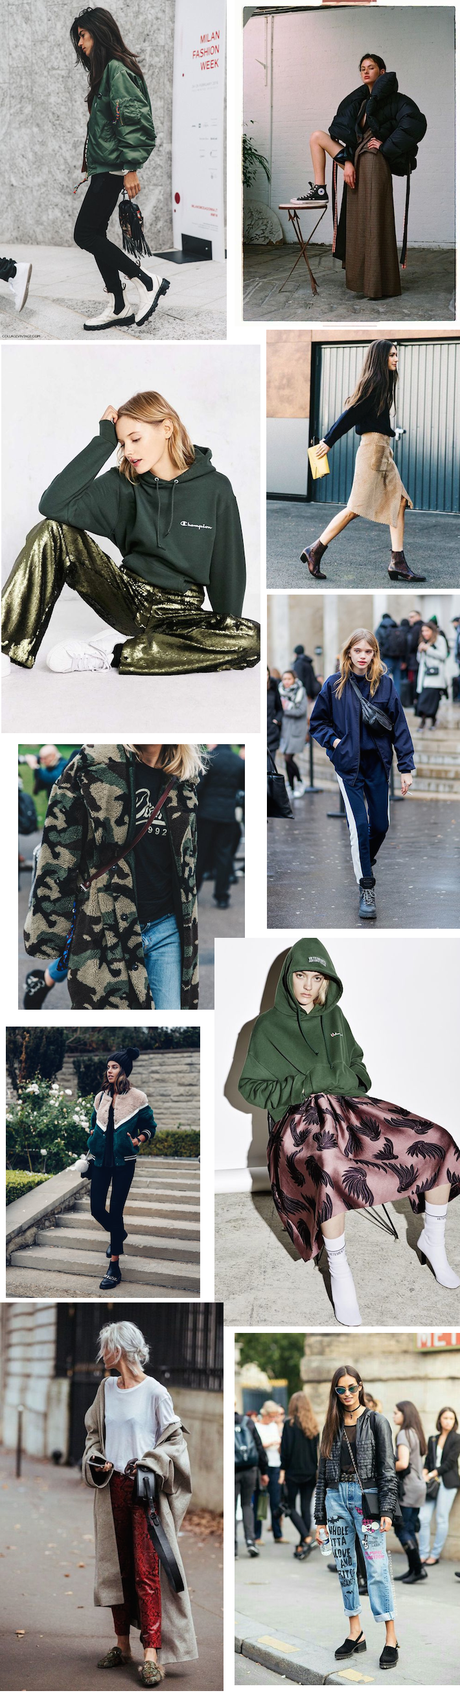 winter outfit street style editorial inspiration what to wear 2016 2017 fall